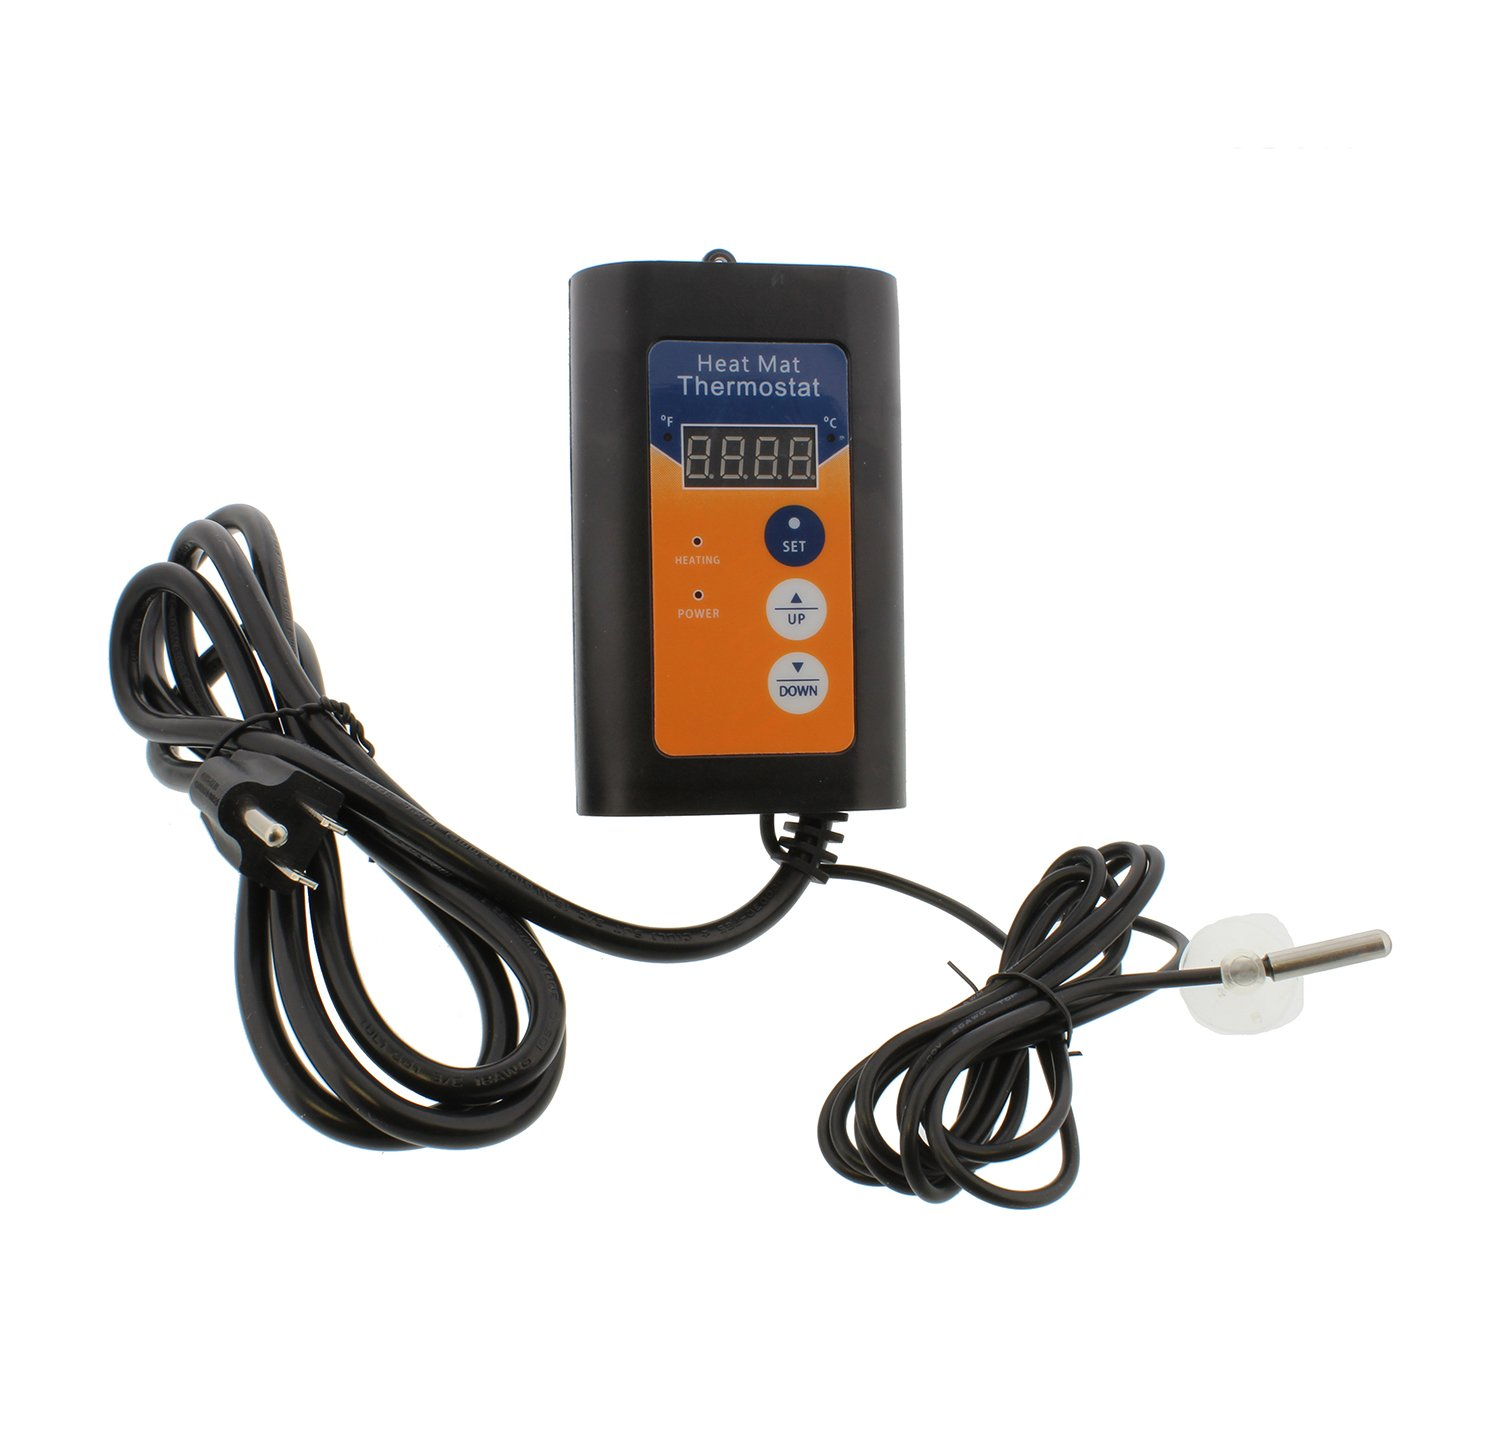 Homebrew Electric Fermentation Heating Thermostat and Probe – Kombucha, Beer Wort, Wine Brewing Digital Heat Controller